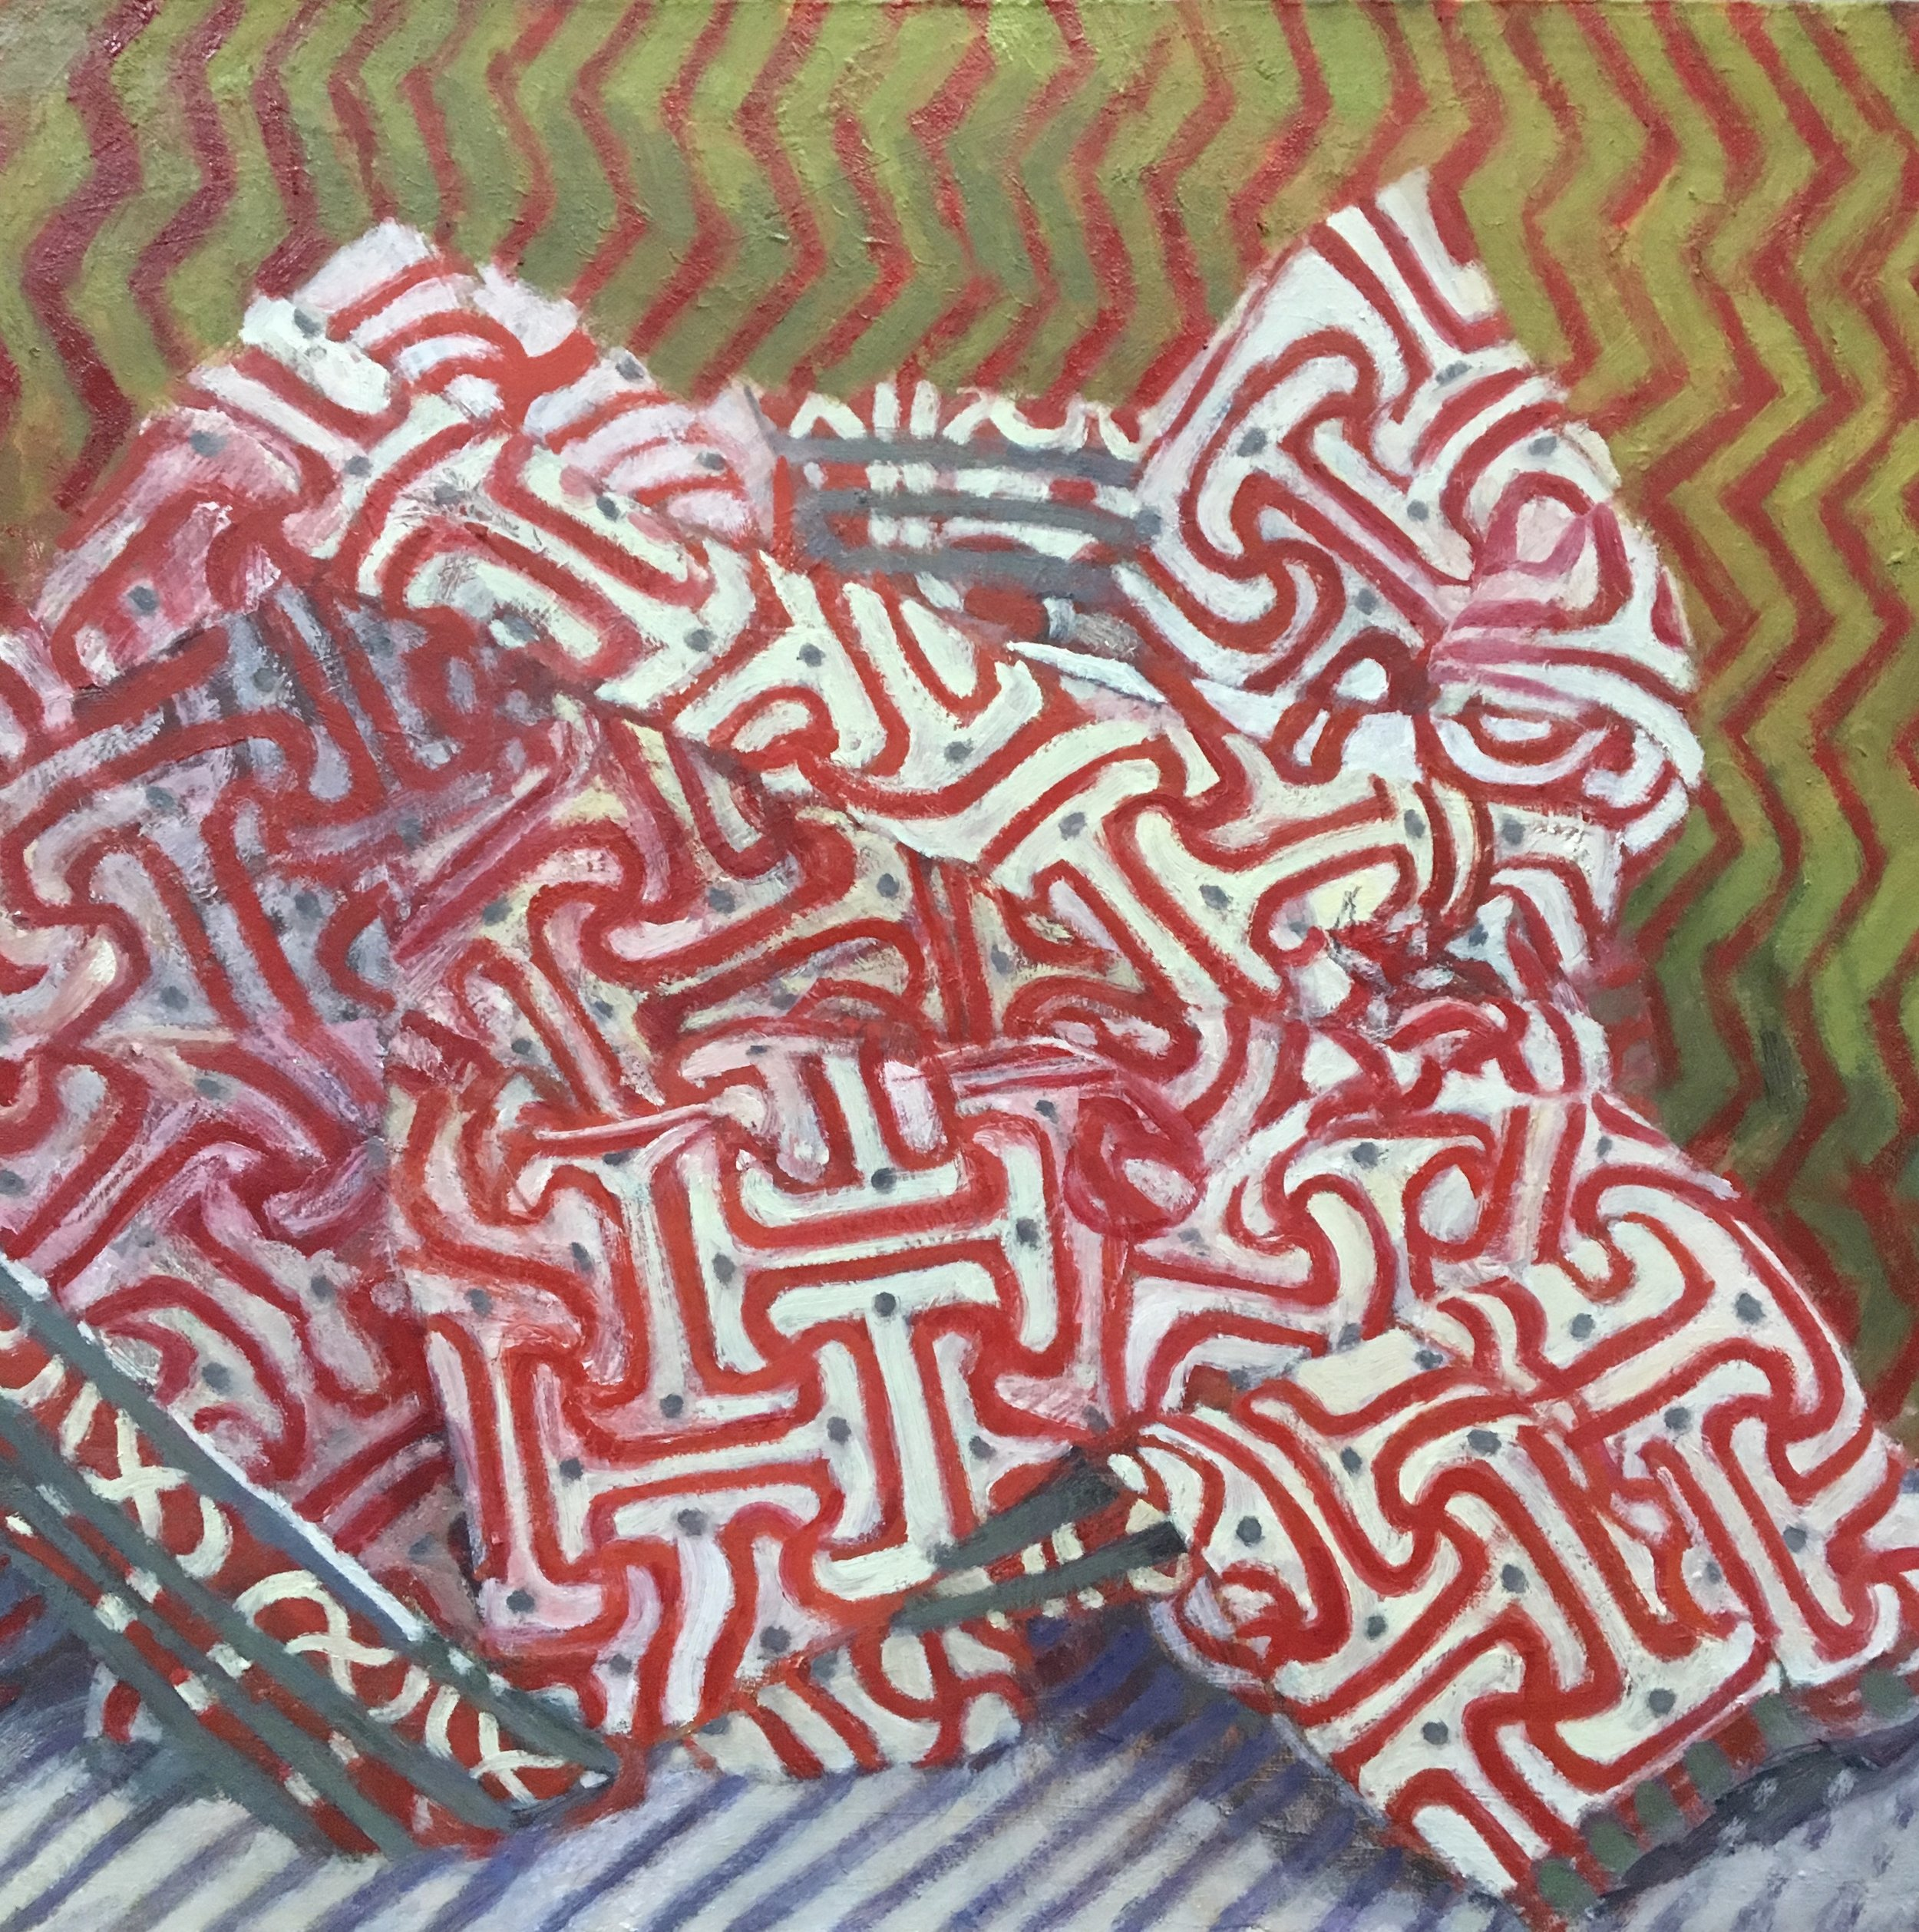 Still Life with Three Patterns, 2017